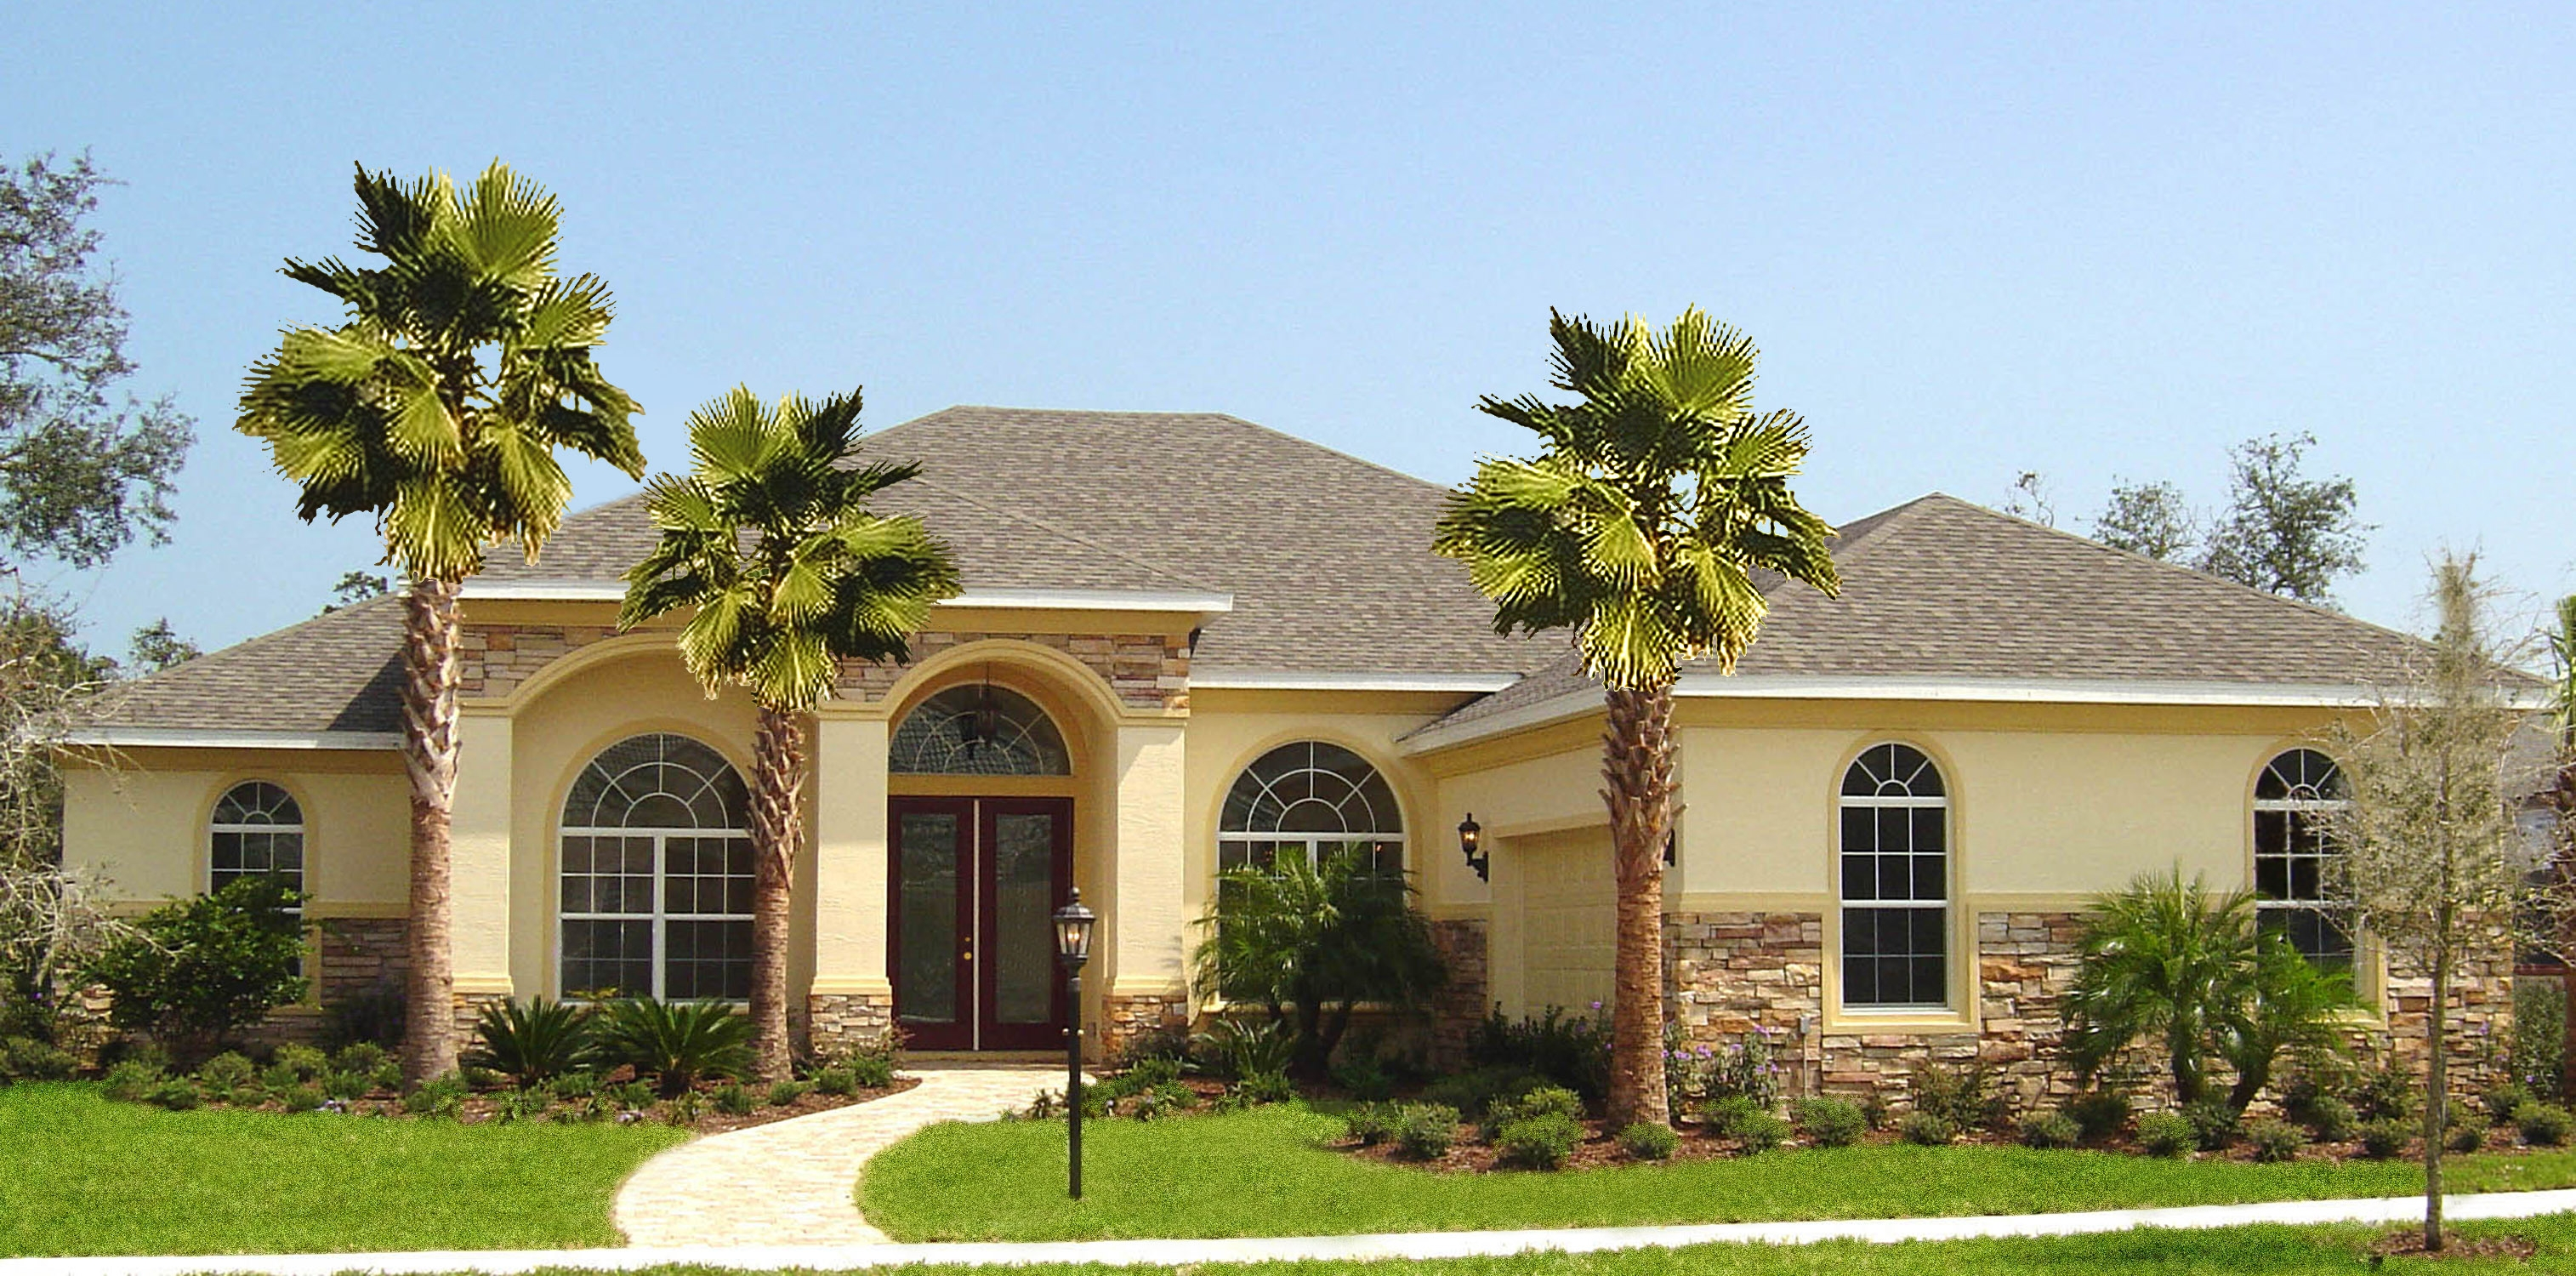 7 Reasons To Invest On A Southwest Florida Home This Year